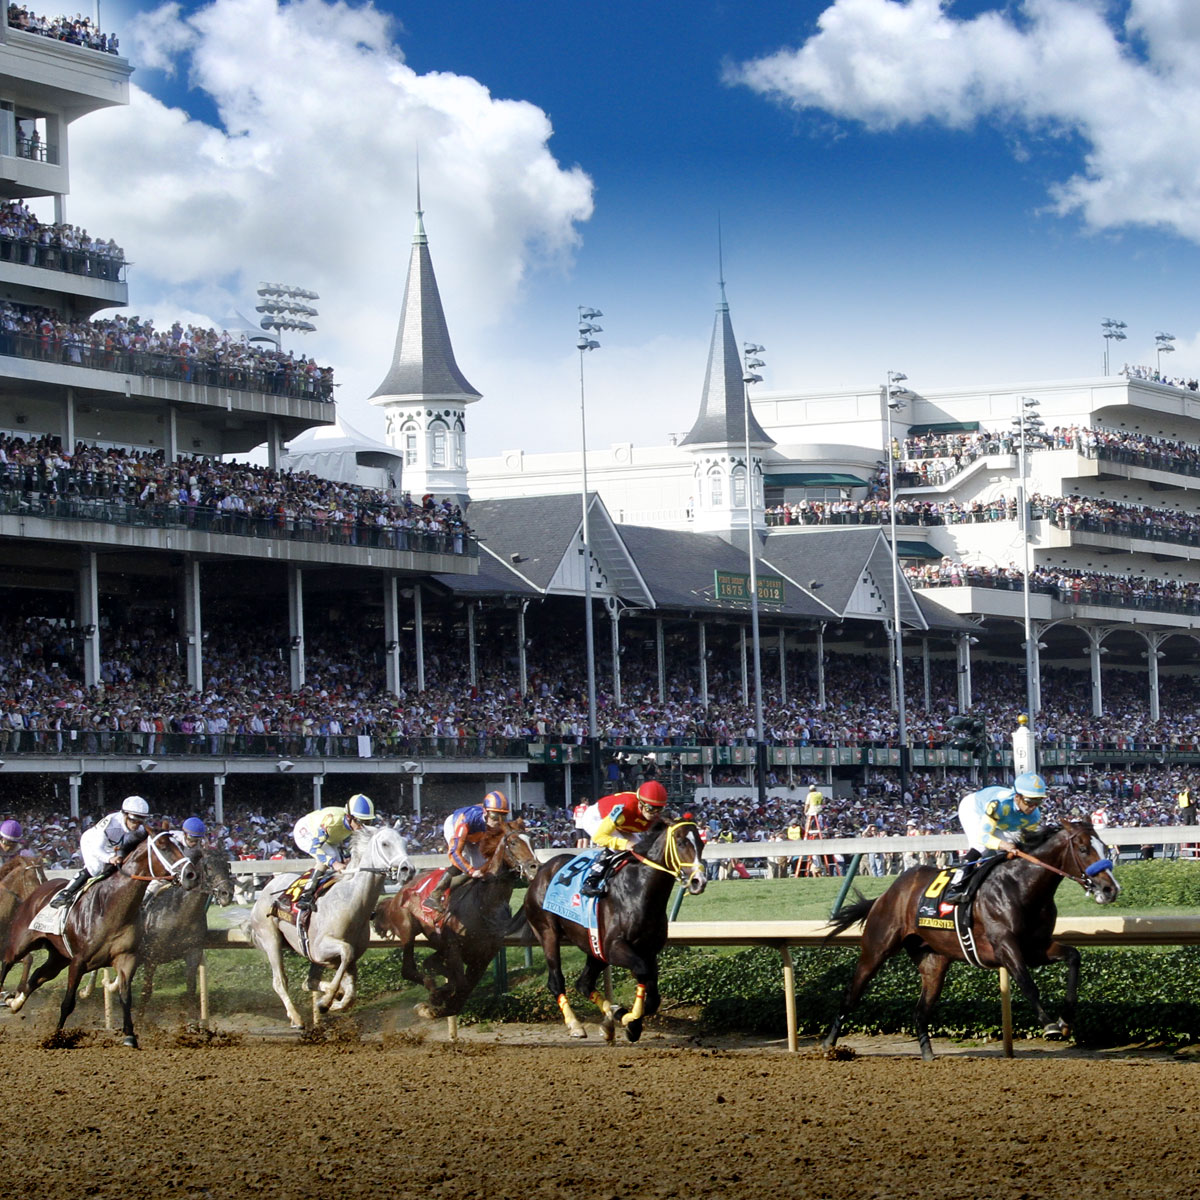 churchilldowns.com - Scratches and Changes | | Churchill Downs Racetrack | Home of the Kentucky Derby